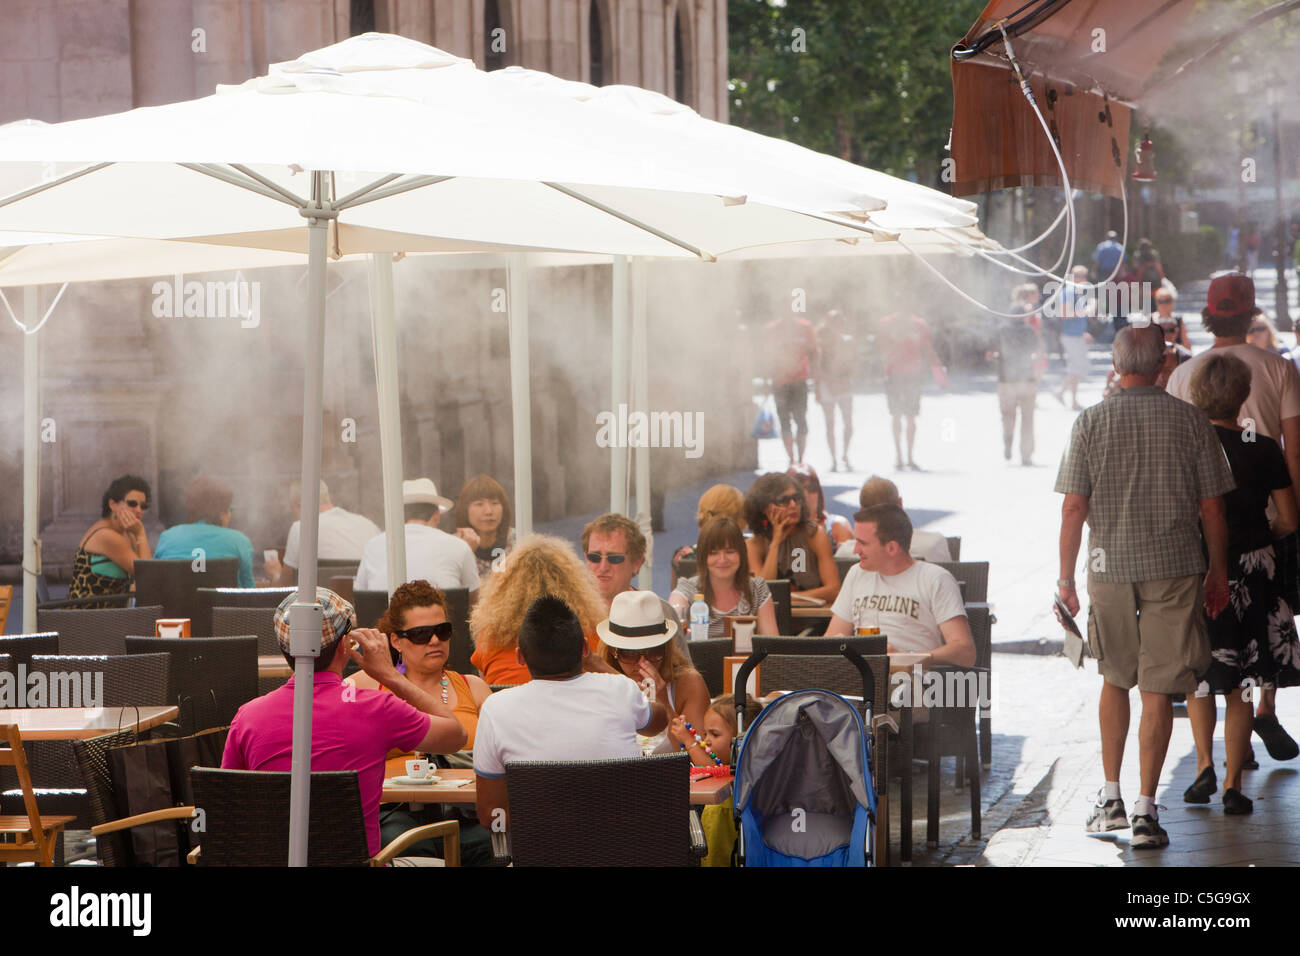 A cafe using cooling mist spray during a heat wave in Seville, Spain. Stock Photo